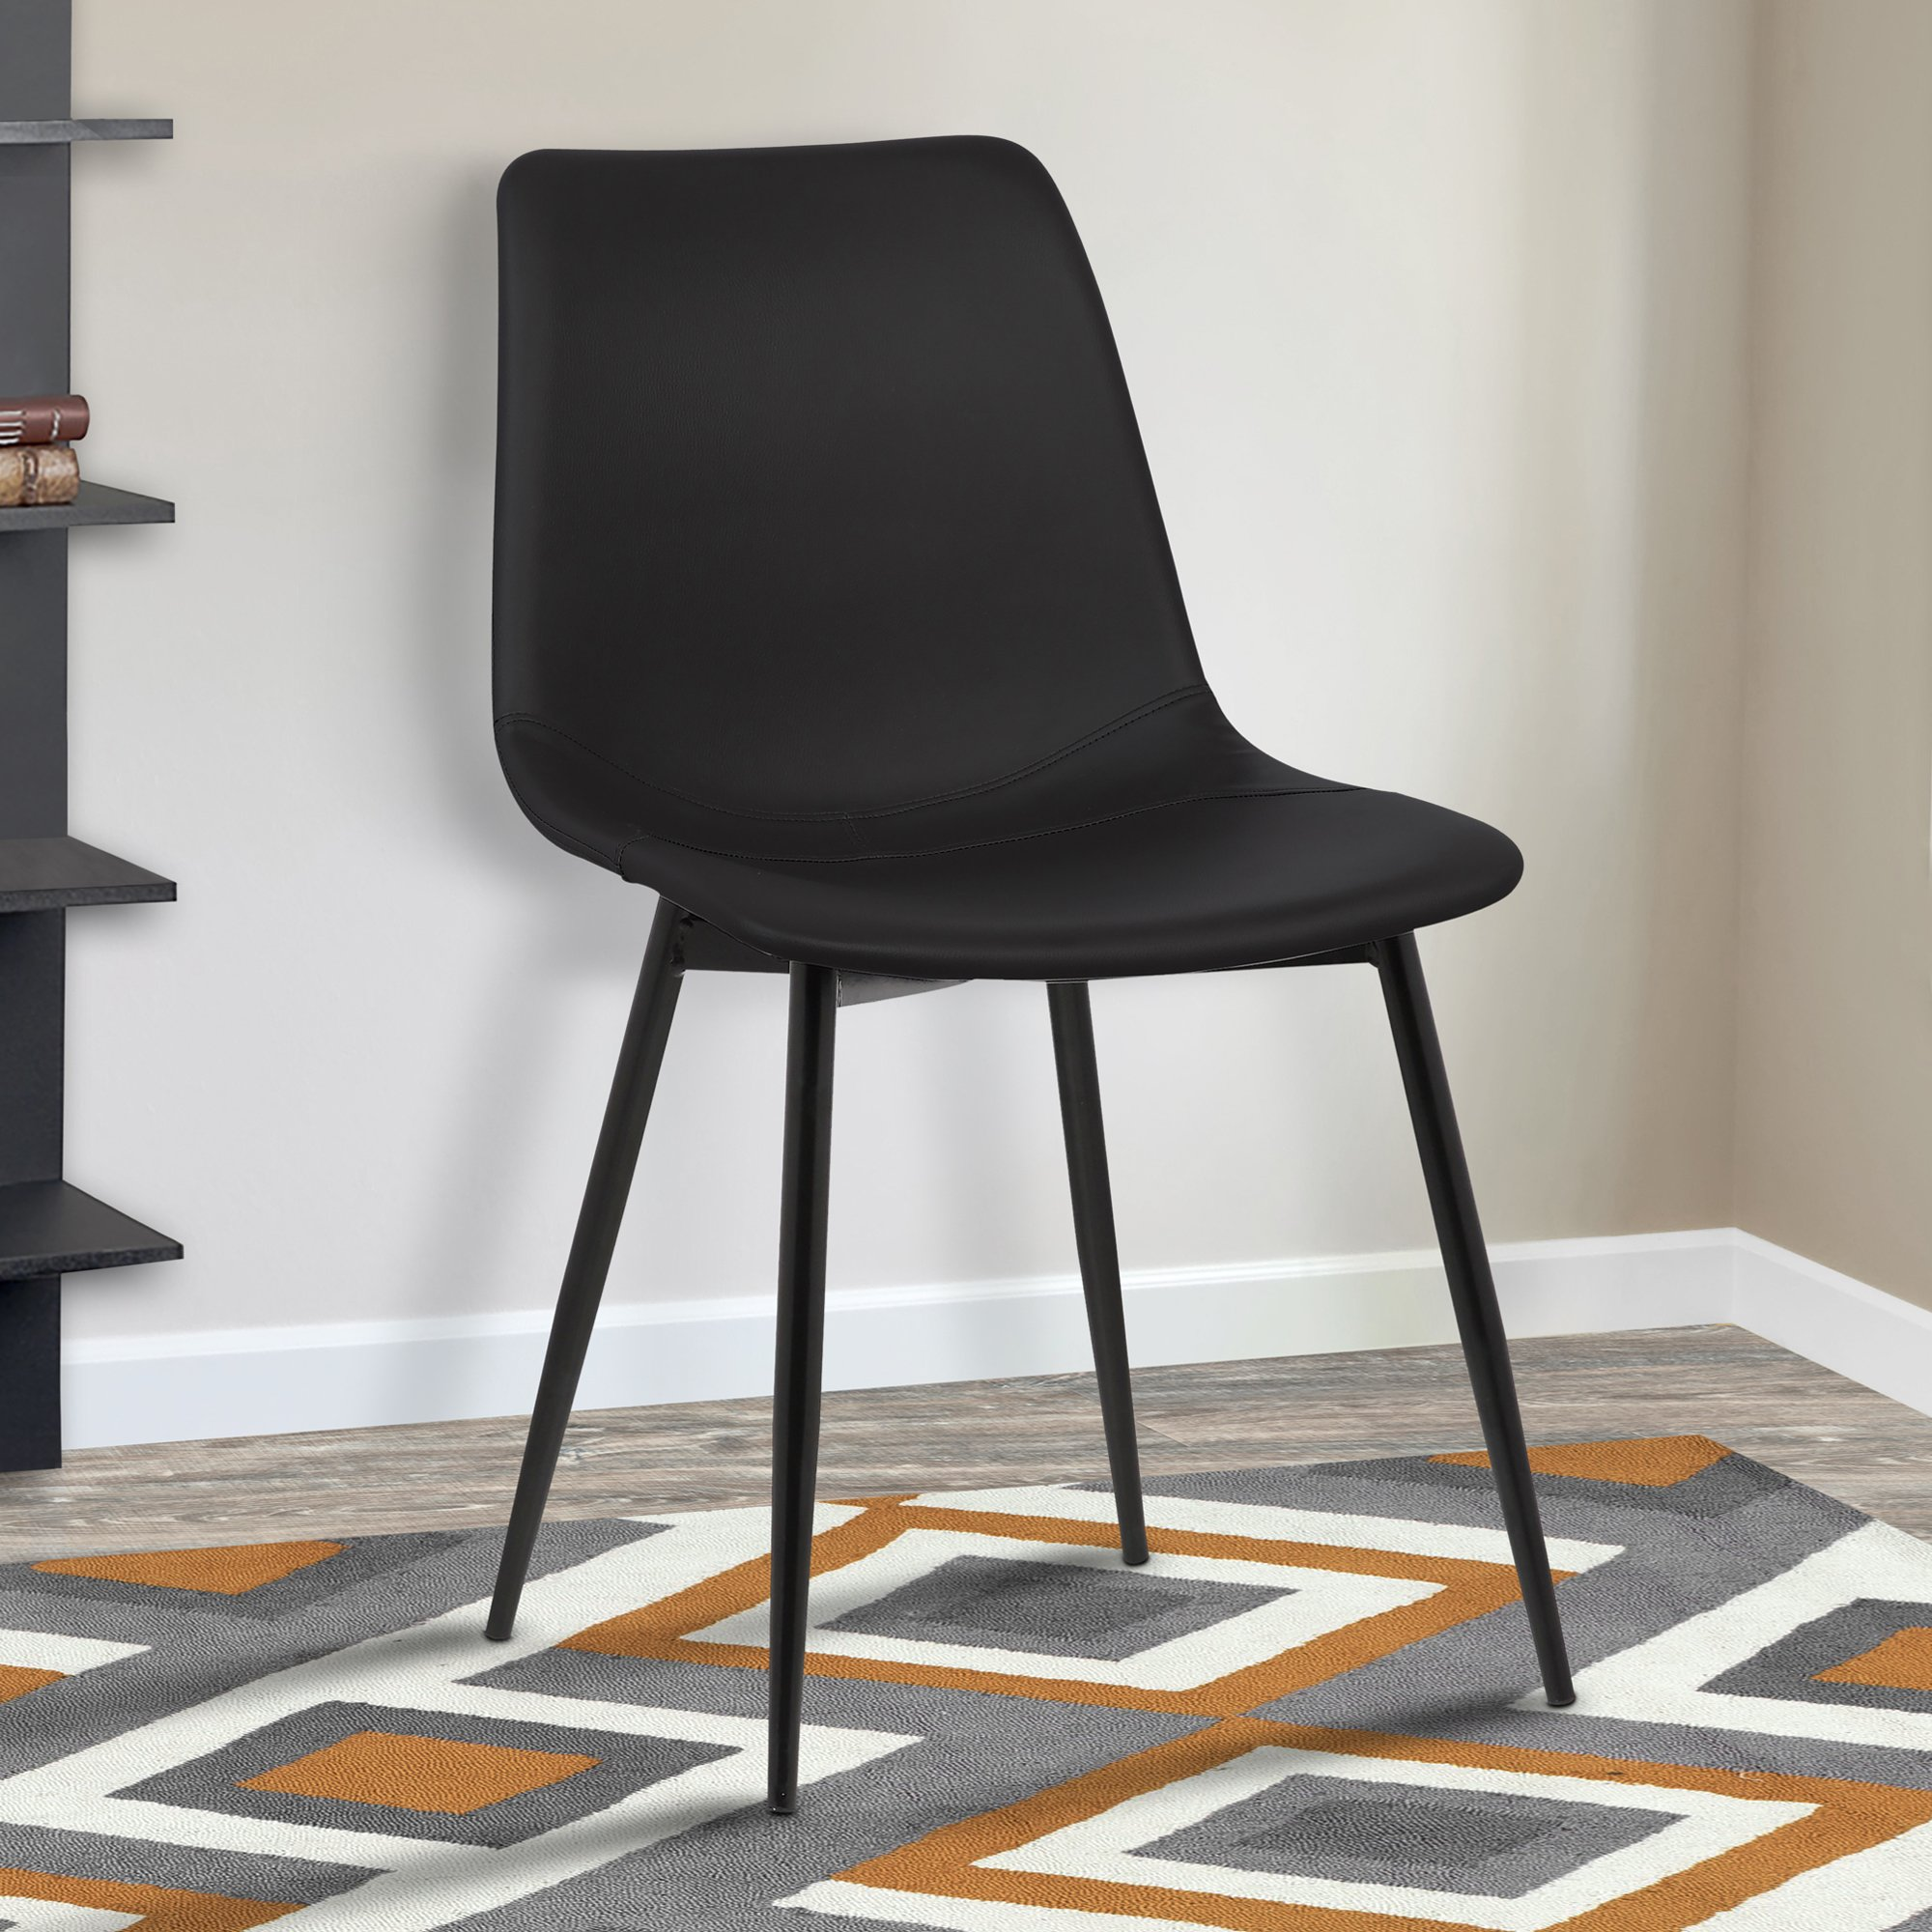 Armen Living Monte Dining Chair in Black Faux Leather and Black Powder Coat Finish by Armen Living